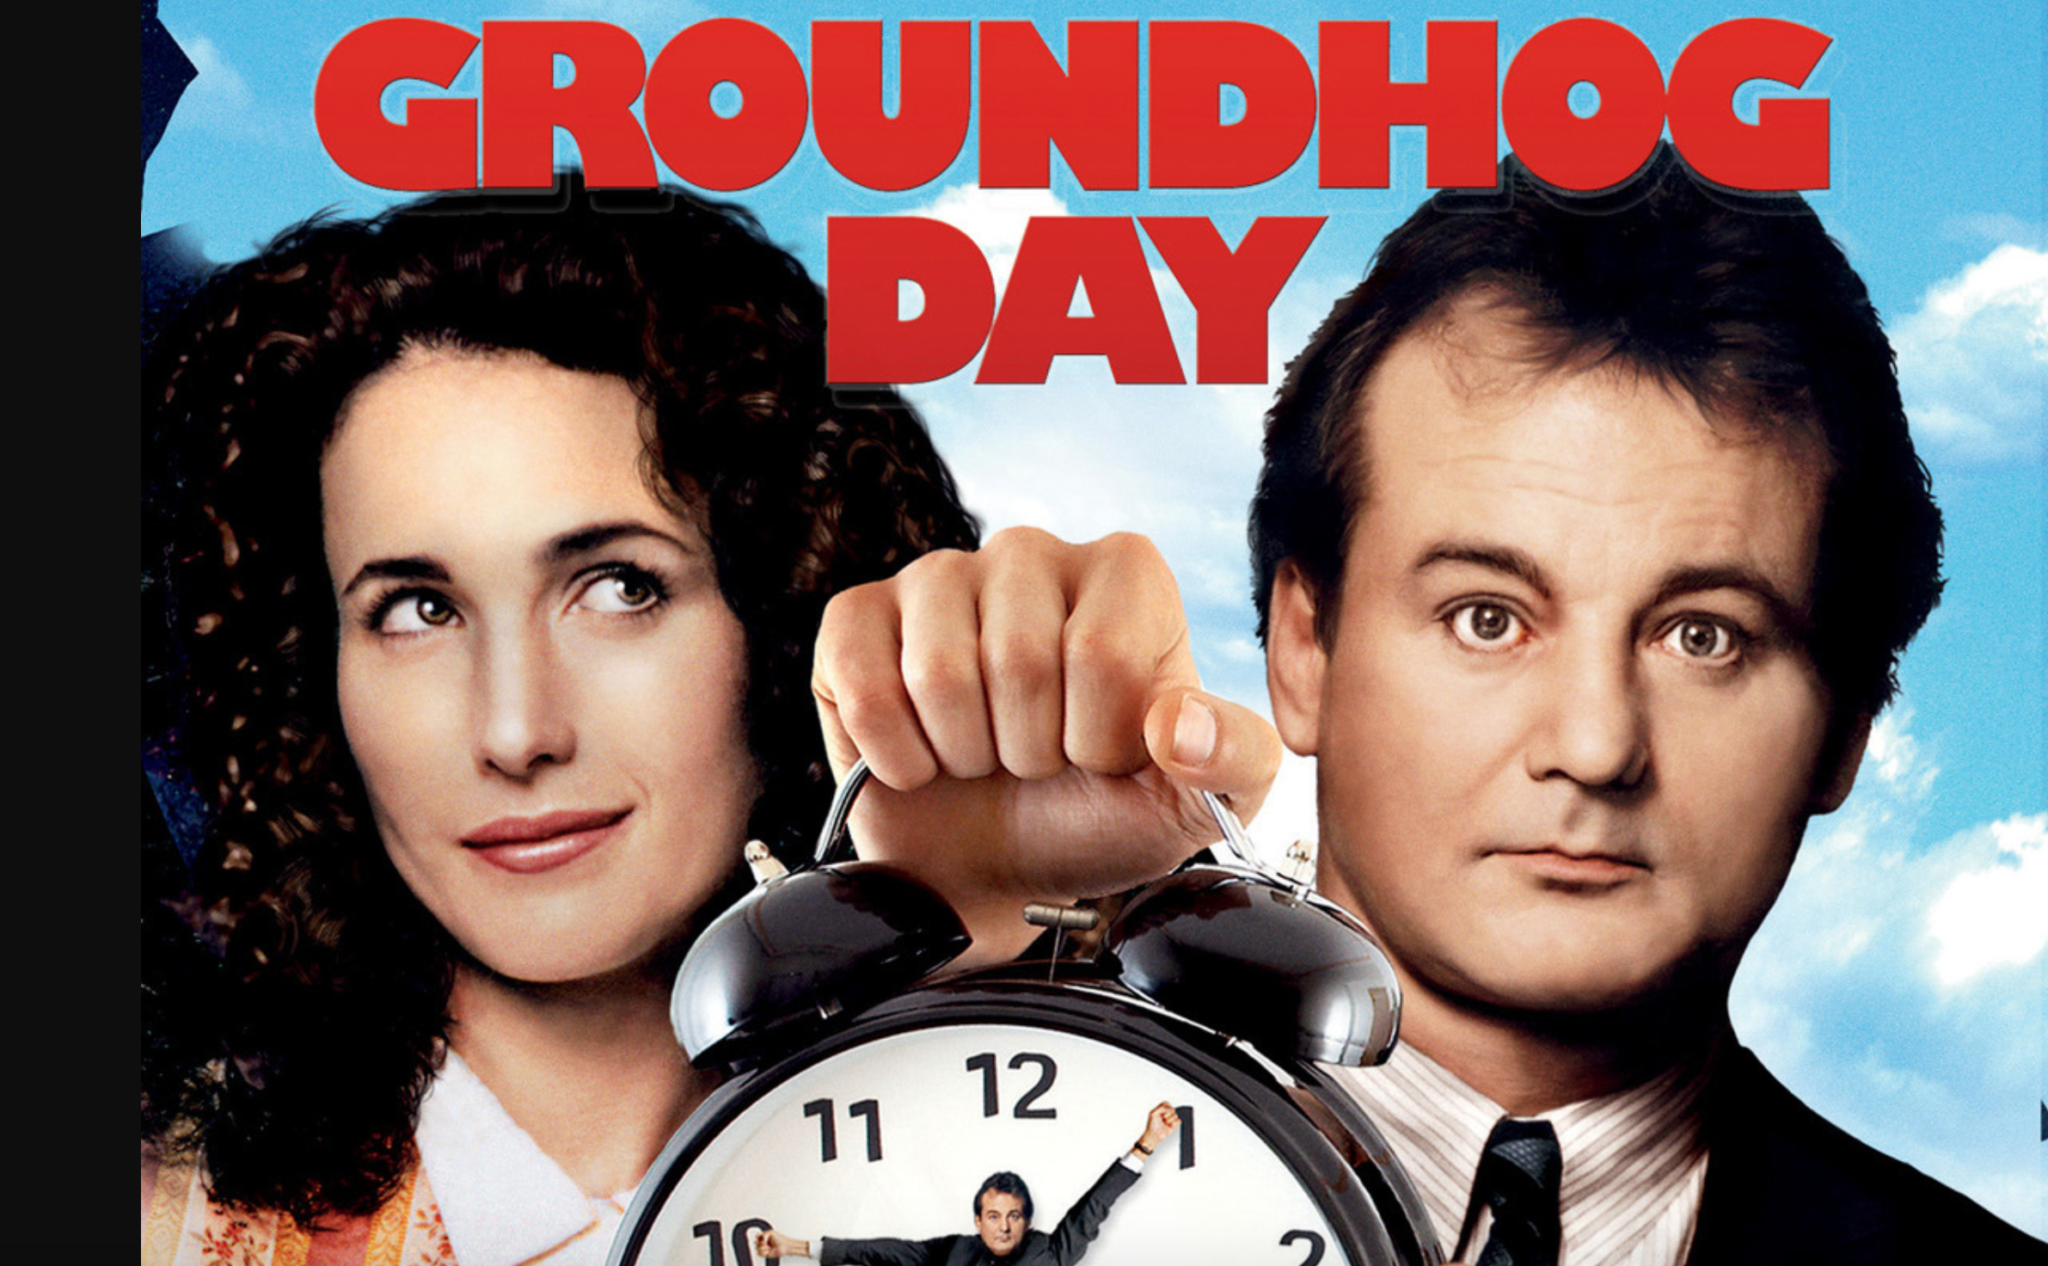 Groundhog Day was a great movie